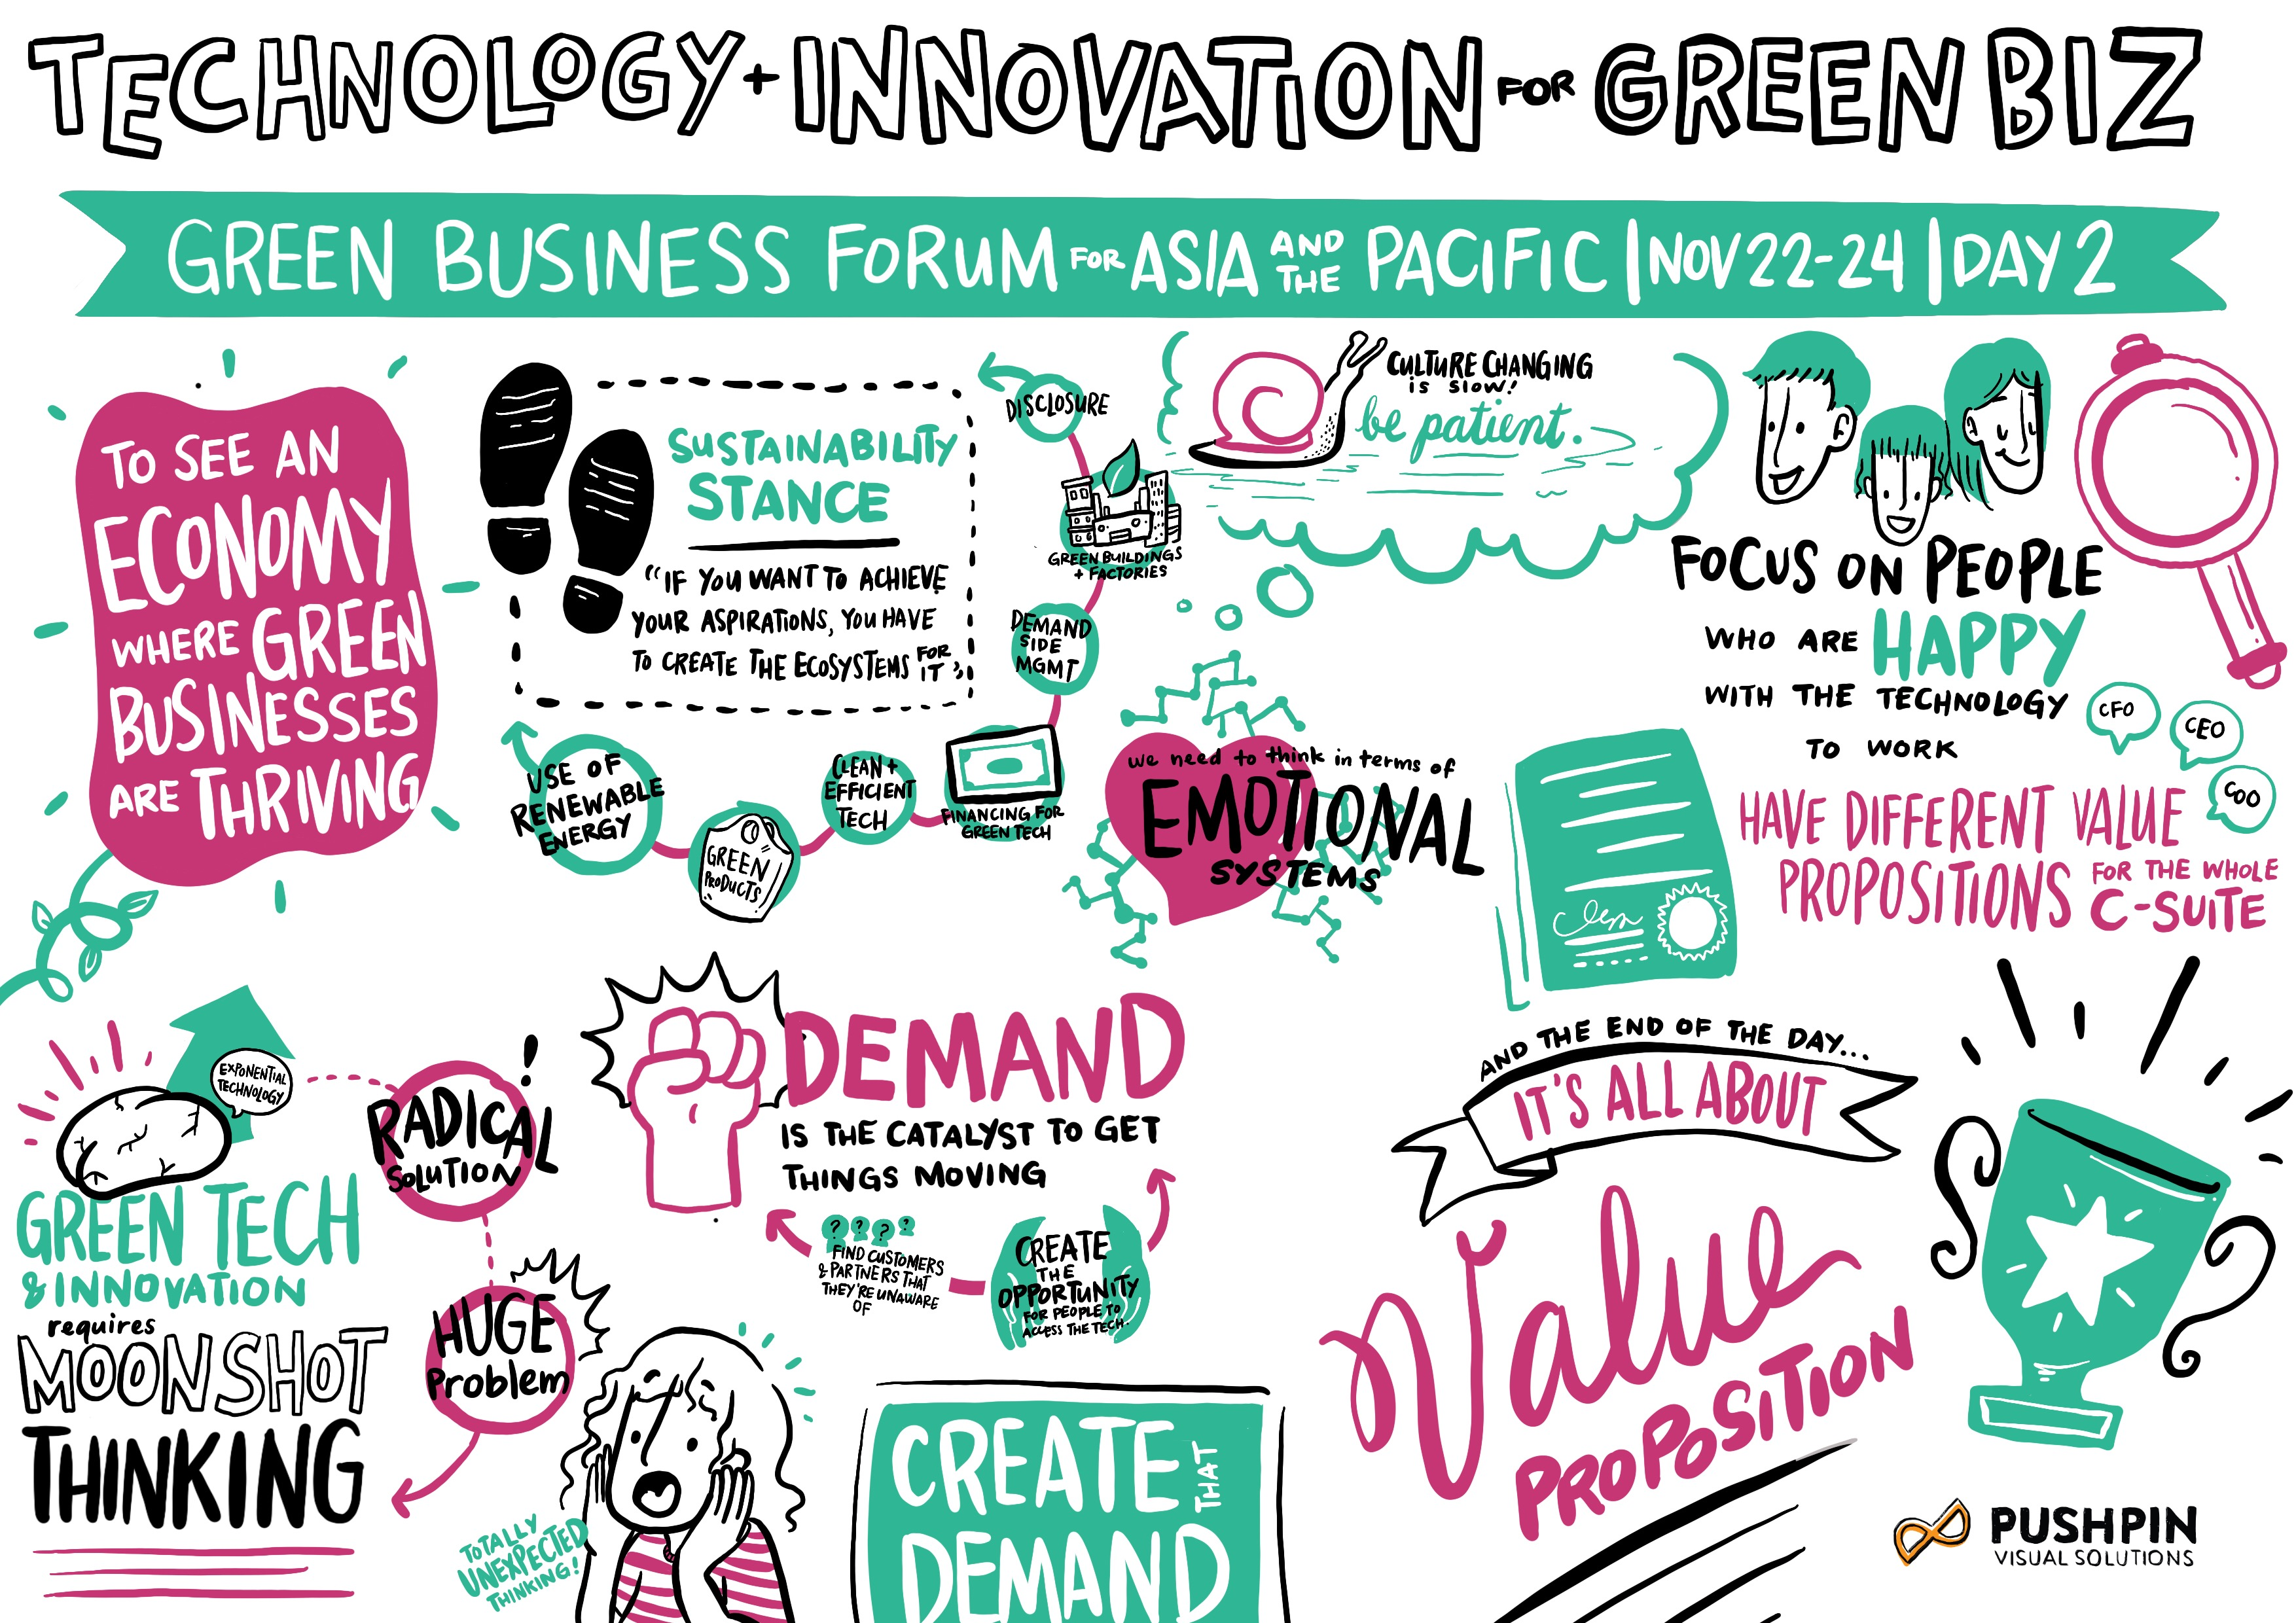 Technology_and_Innovation_for_Green_Business